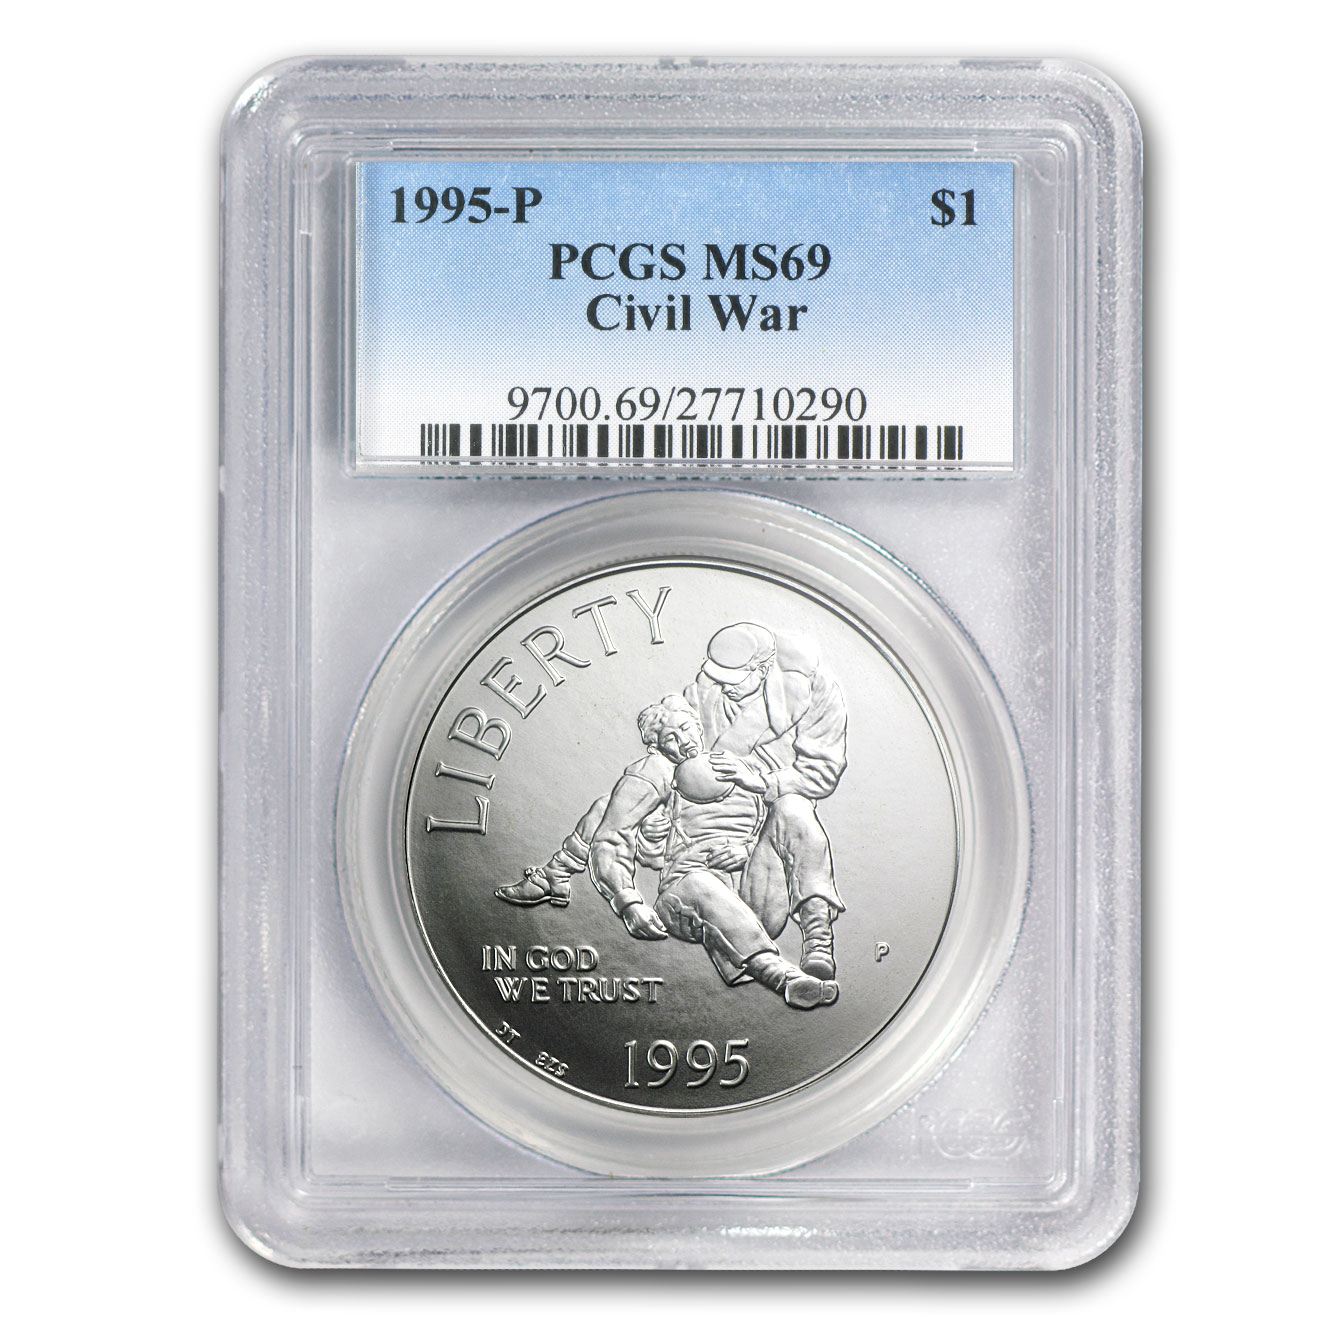 1995-P Civil War $1 Silver Commem MS-69 PCGS